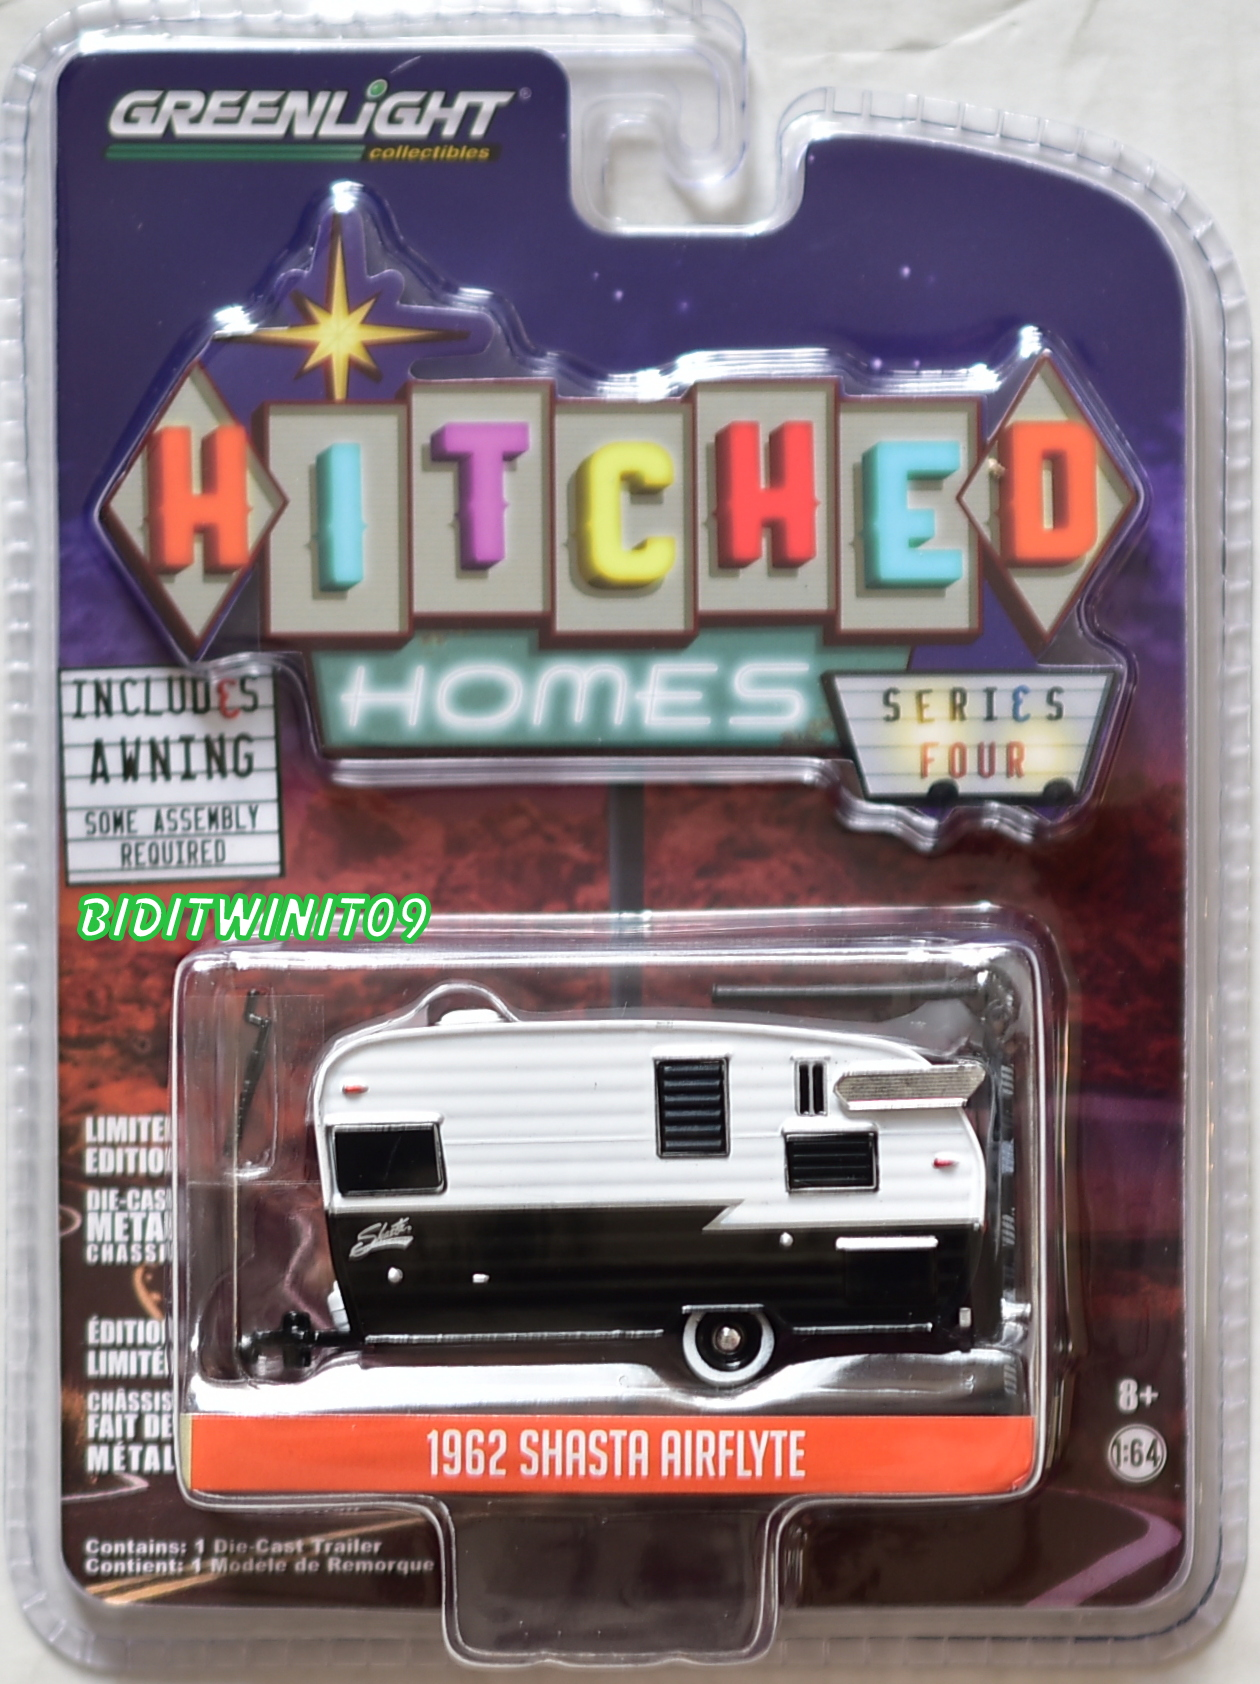 GREENLIGHT 2018 HITCHED HOMES SERIES FOUR 1962 SHASTA AIRFLYTE